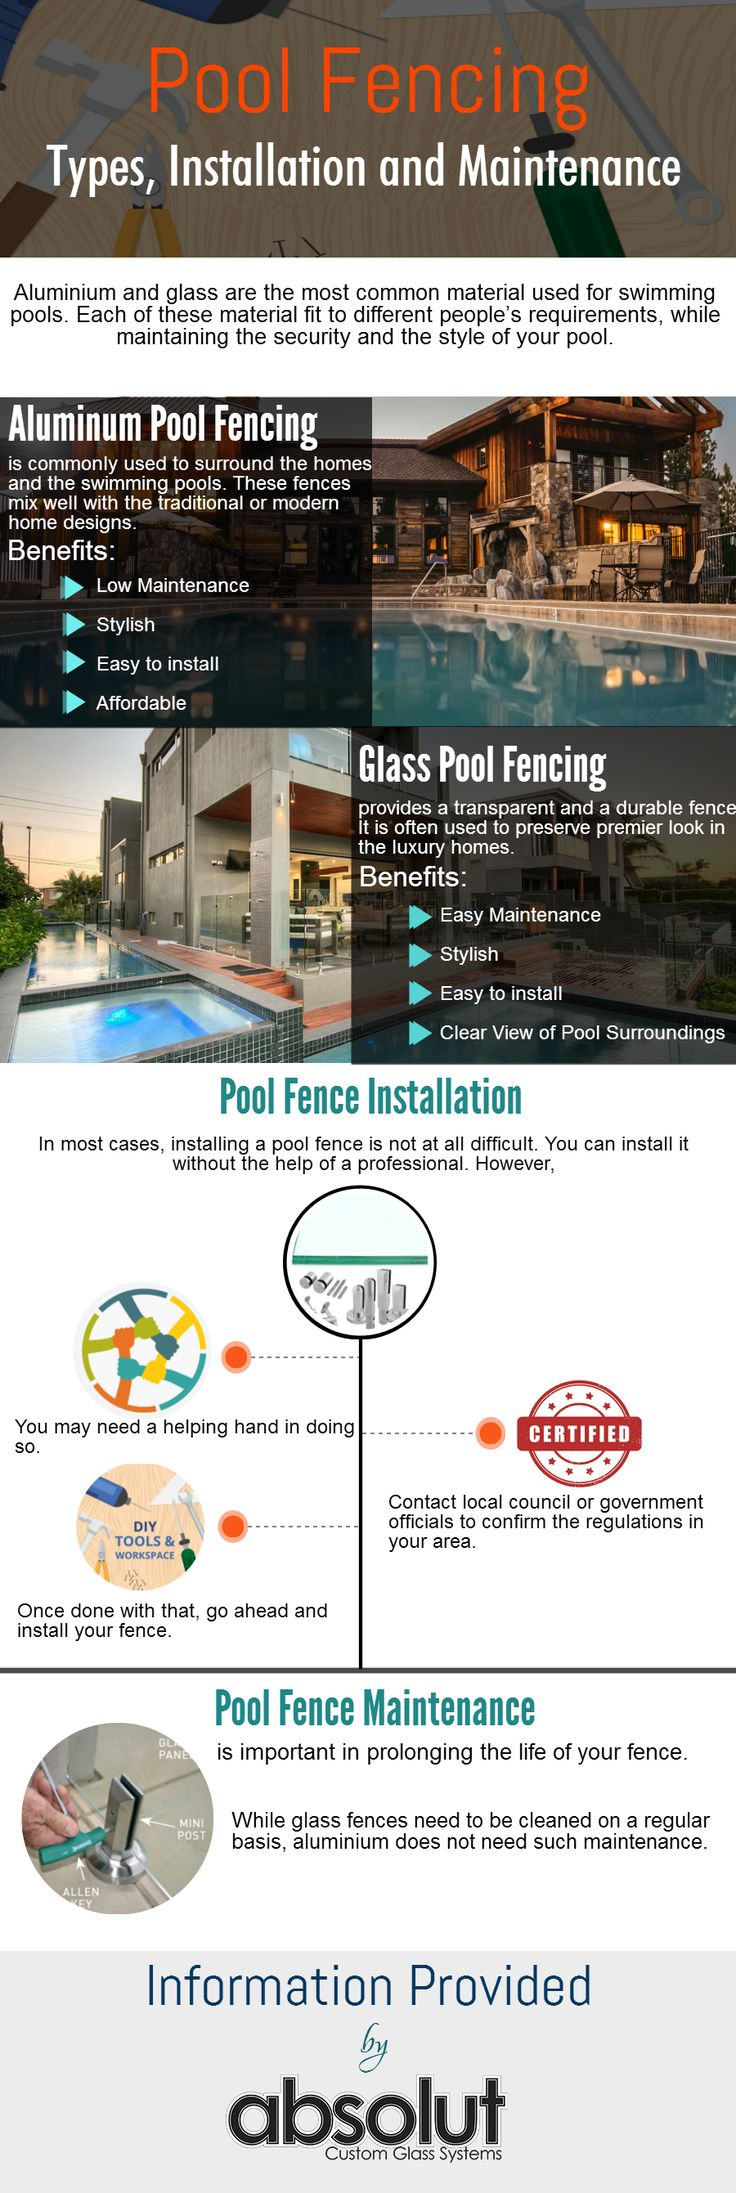 Pool fencing is one of the effective ways of increasing the aesthetic value of your pool area and keeping it safe. However, there is a wide variety of fencing used for the pool. Its installation and maintenance also has some particulars. To know more about – Pool Fencing, its types, installation and maintenance, go through this Infographic.